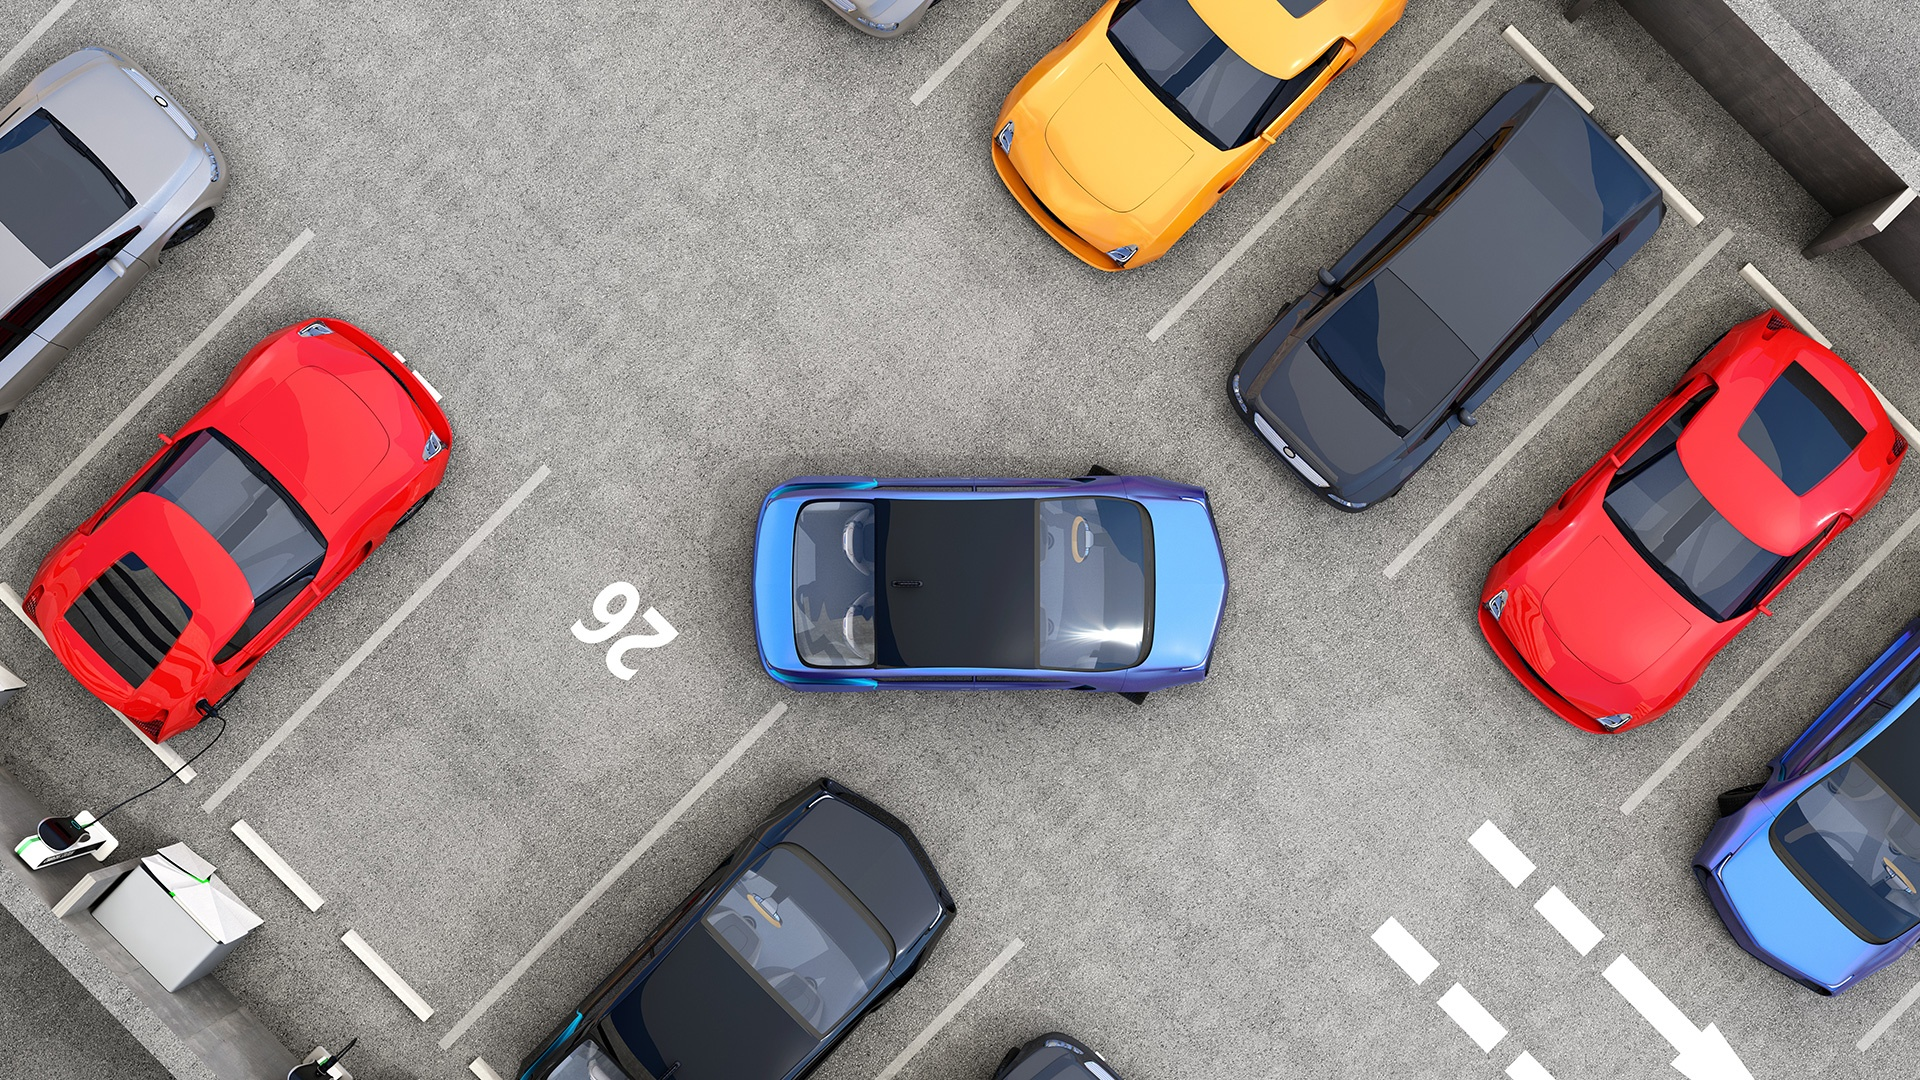 What are car proximity sensors and how do they work?